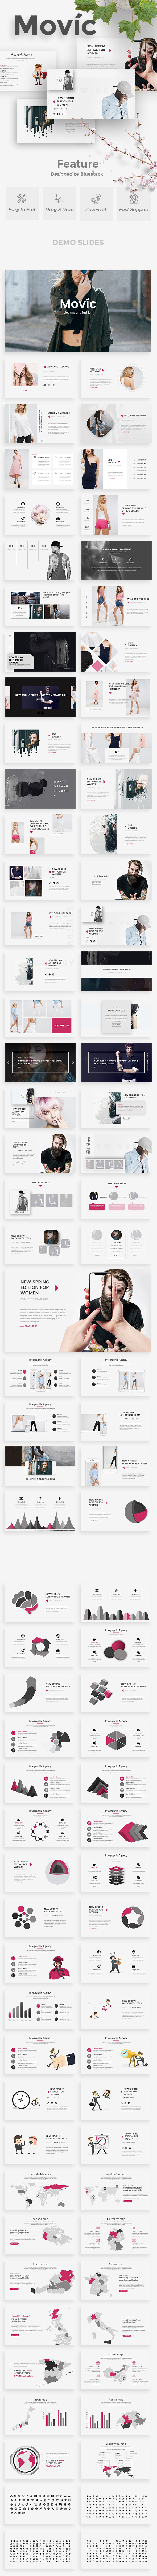 Movic - Clothing and Fashion Keynote Template - Creative Keynote Templates